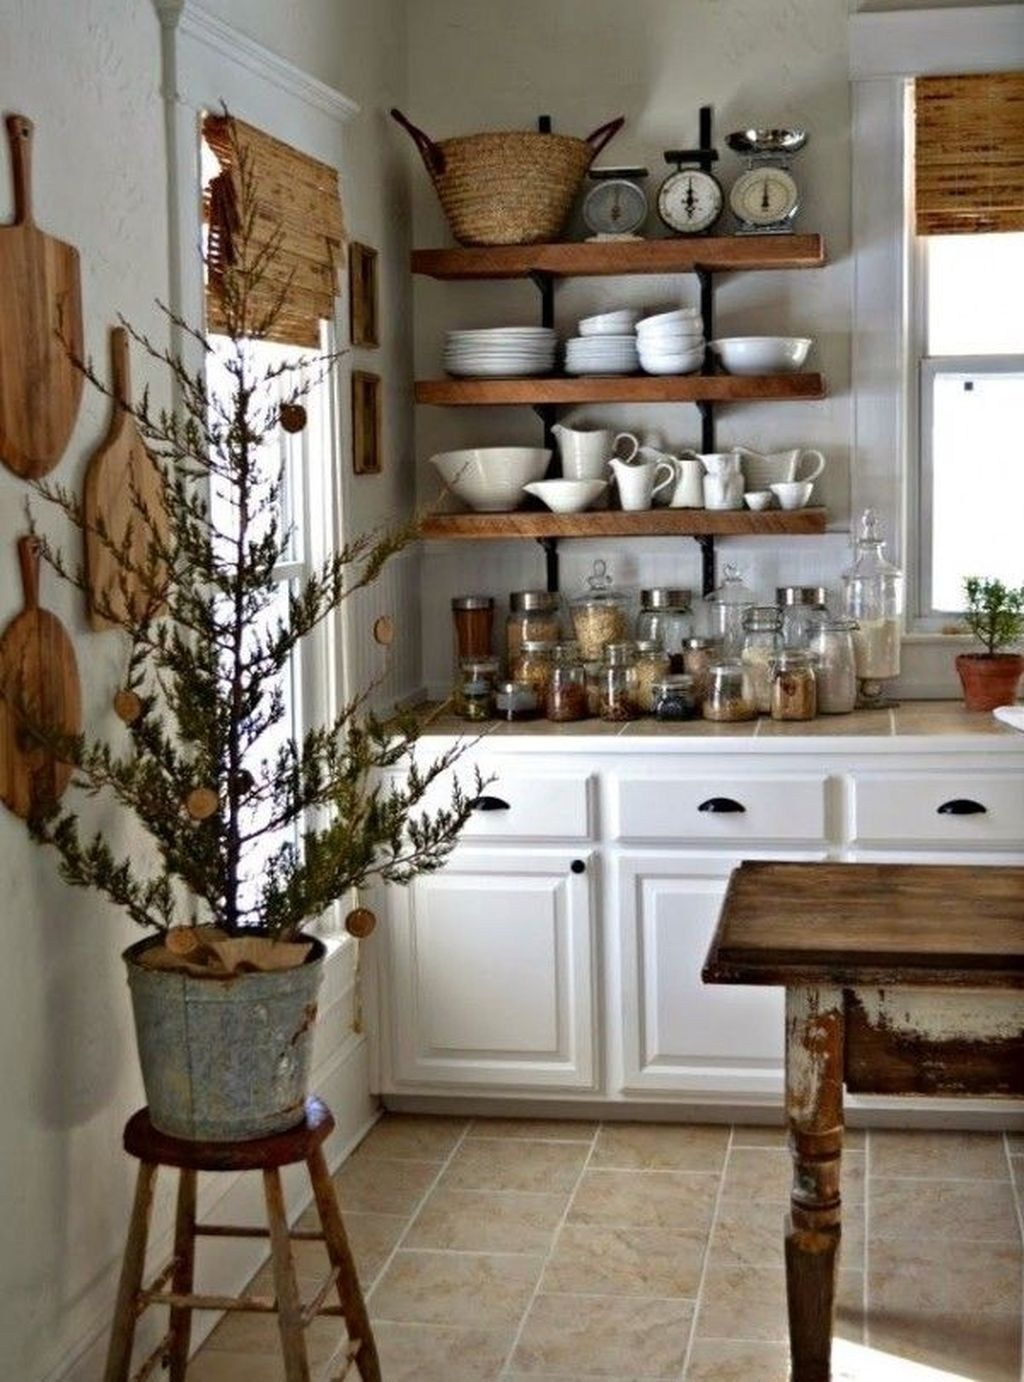 Country Kitchen Shelves 36 Simply French Country Home Decor Ideas Kitchen Kitchen